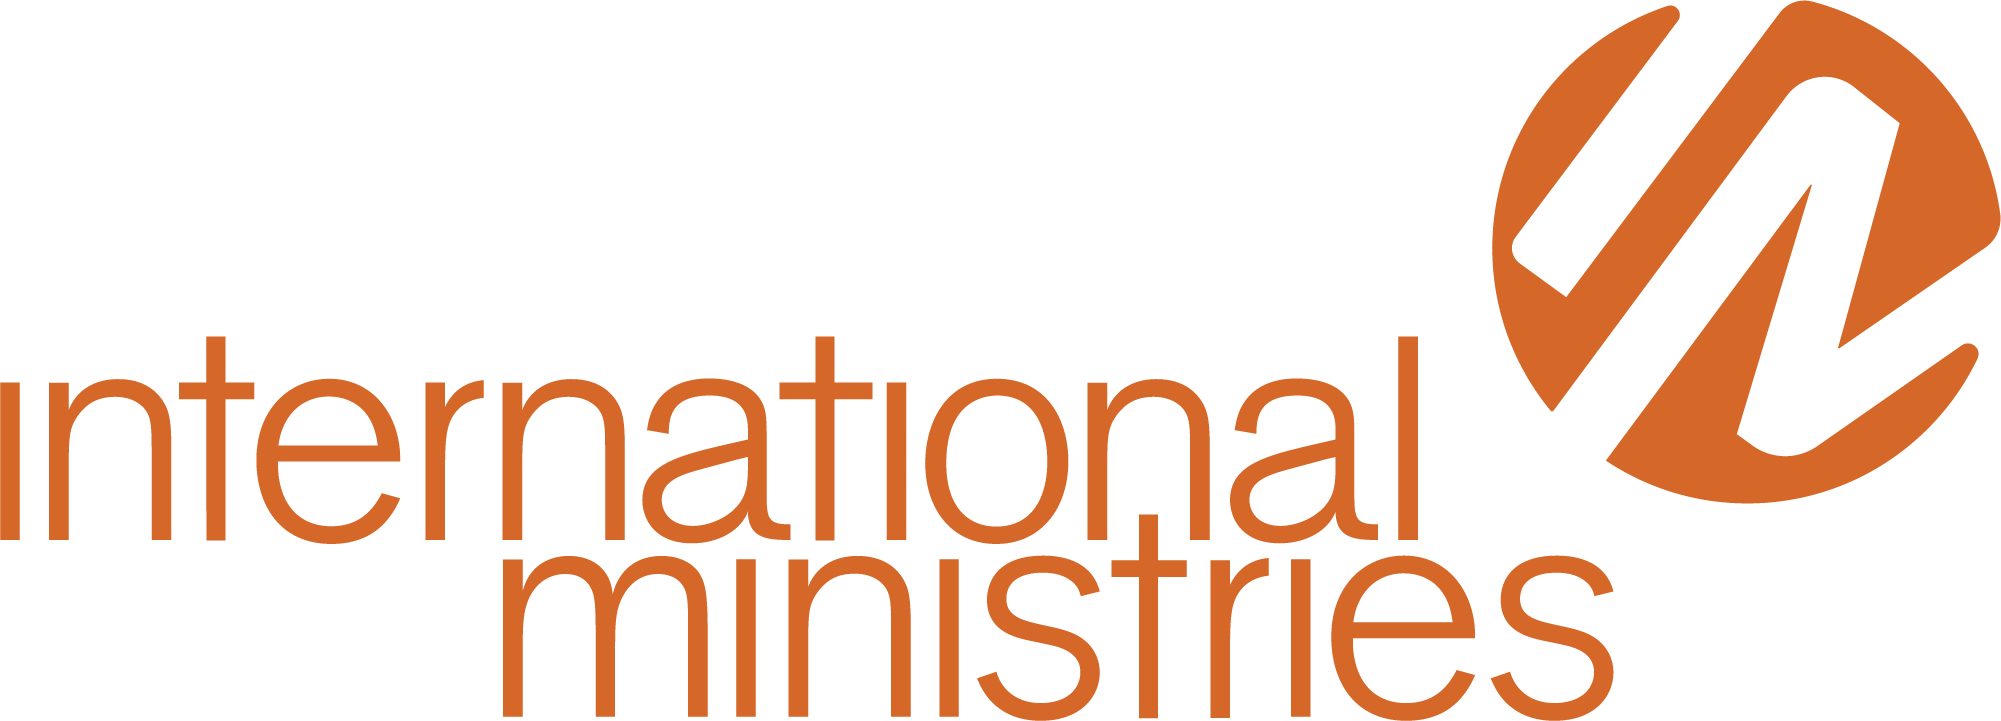 International Ministries | Sharing the Love of Christ